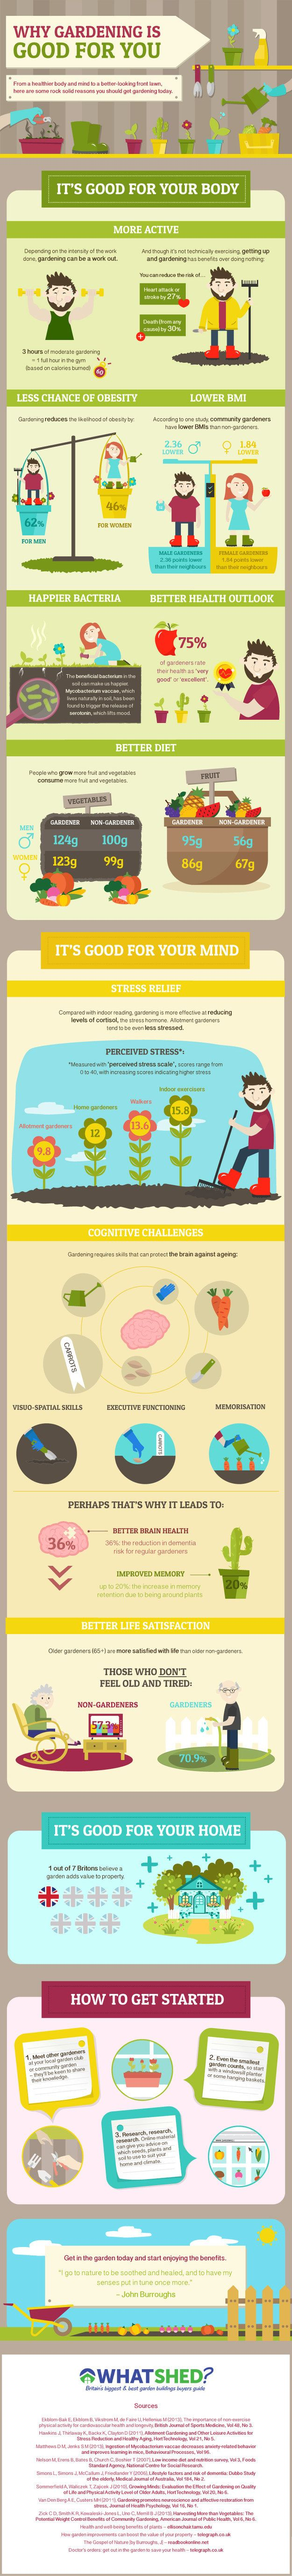 Now take all of that gardening knowledge and go outside and get dirty…it's good for you! | 23 Diagrams That Make Gardening So Much Easier